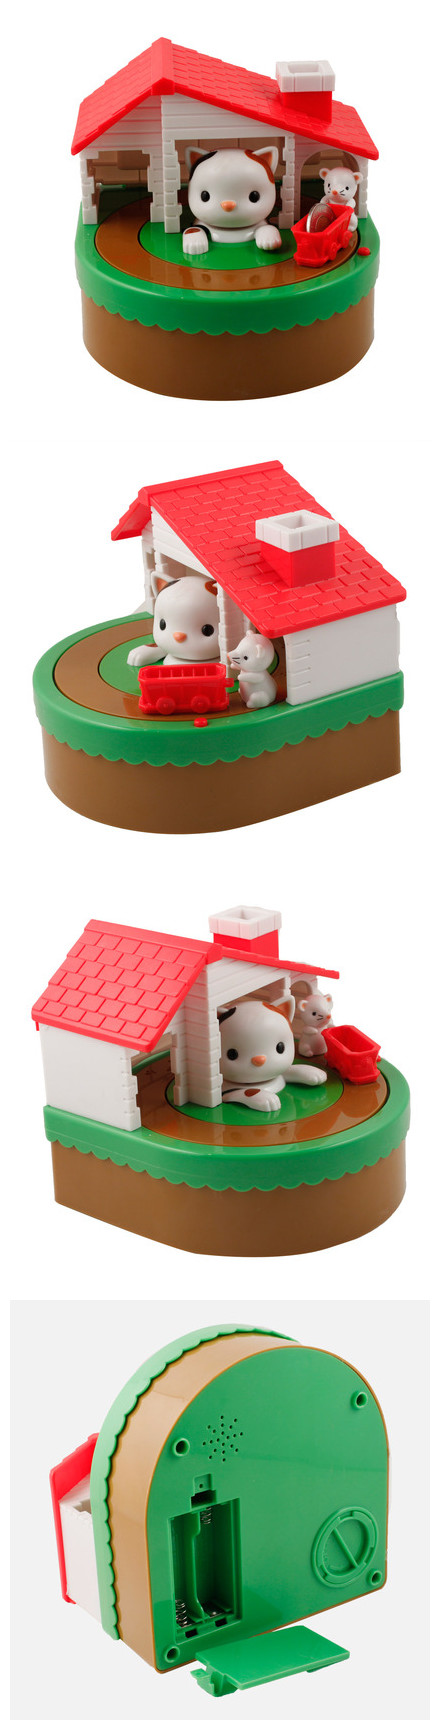 Sutakora-Cat-and-Mouse-Coin-Bank